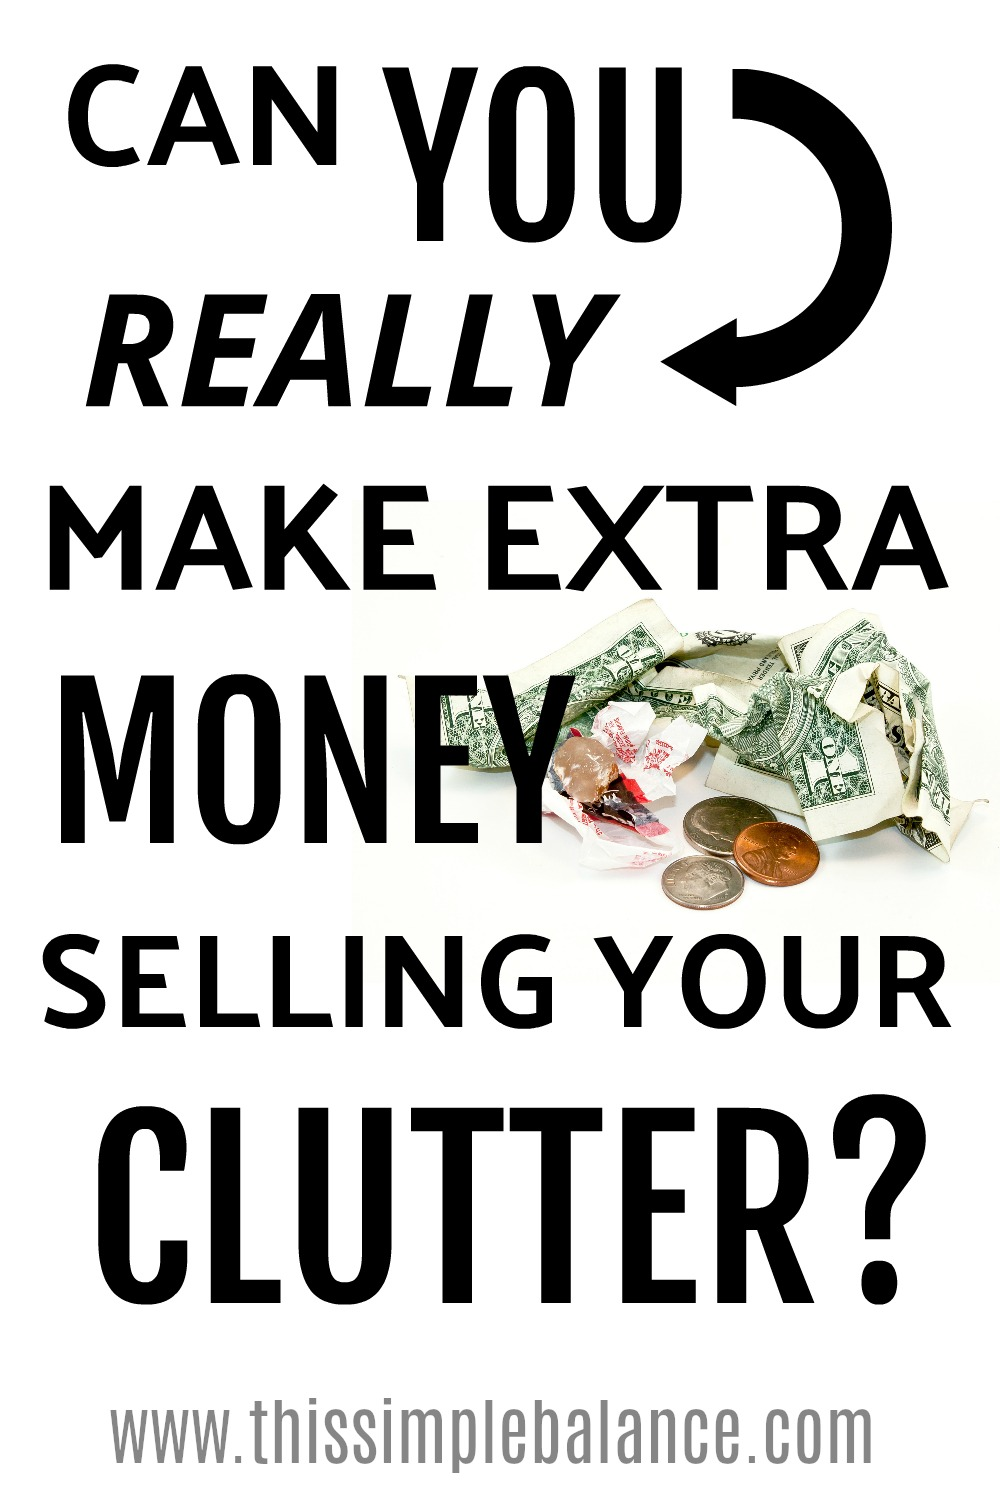 Can you make money selling your clutter? It depends on if you are coming from a place of more...or less.